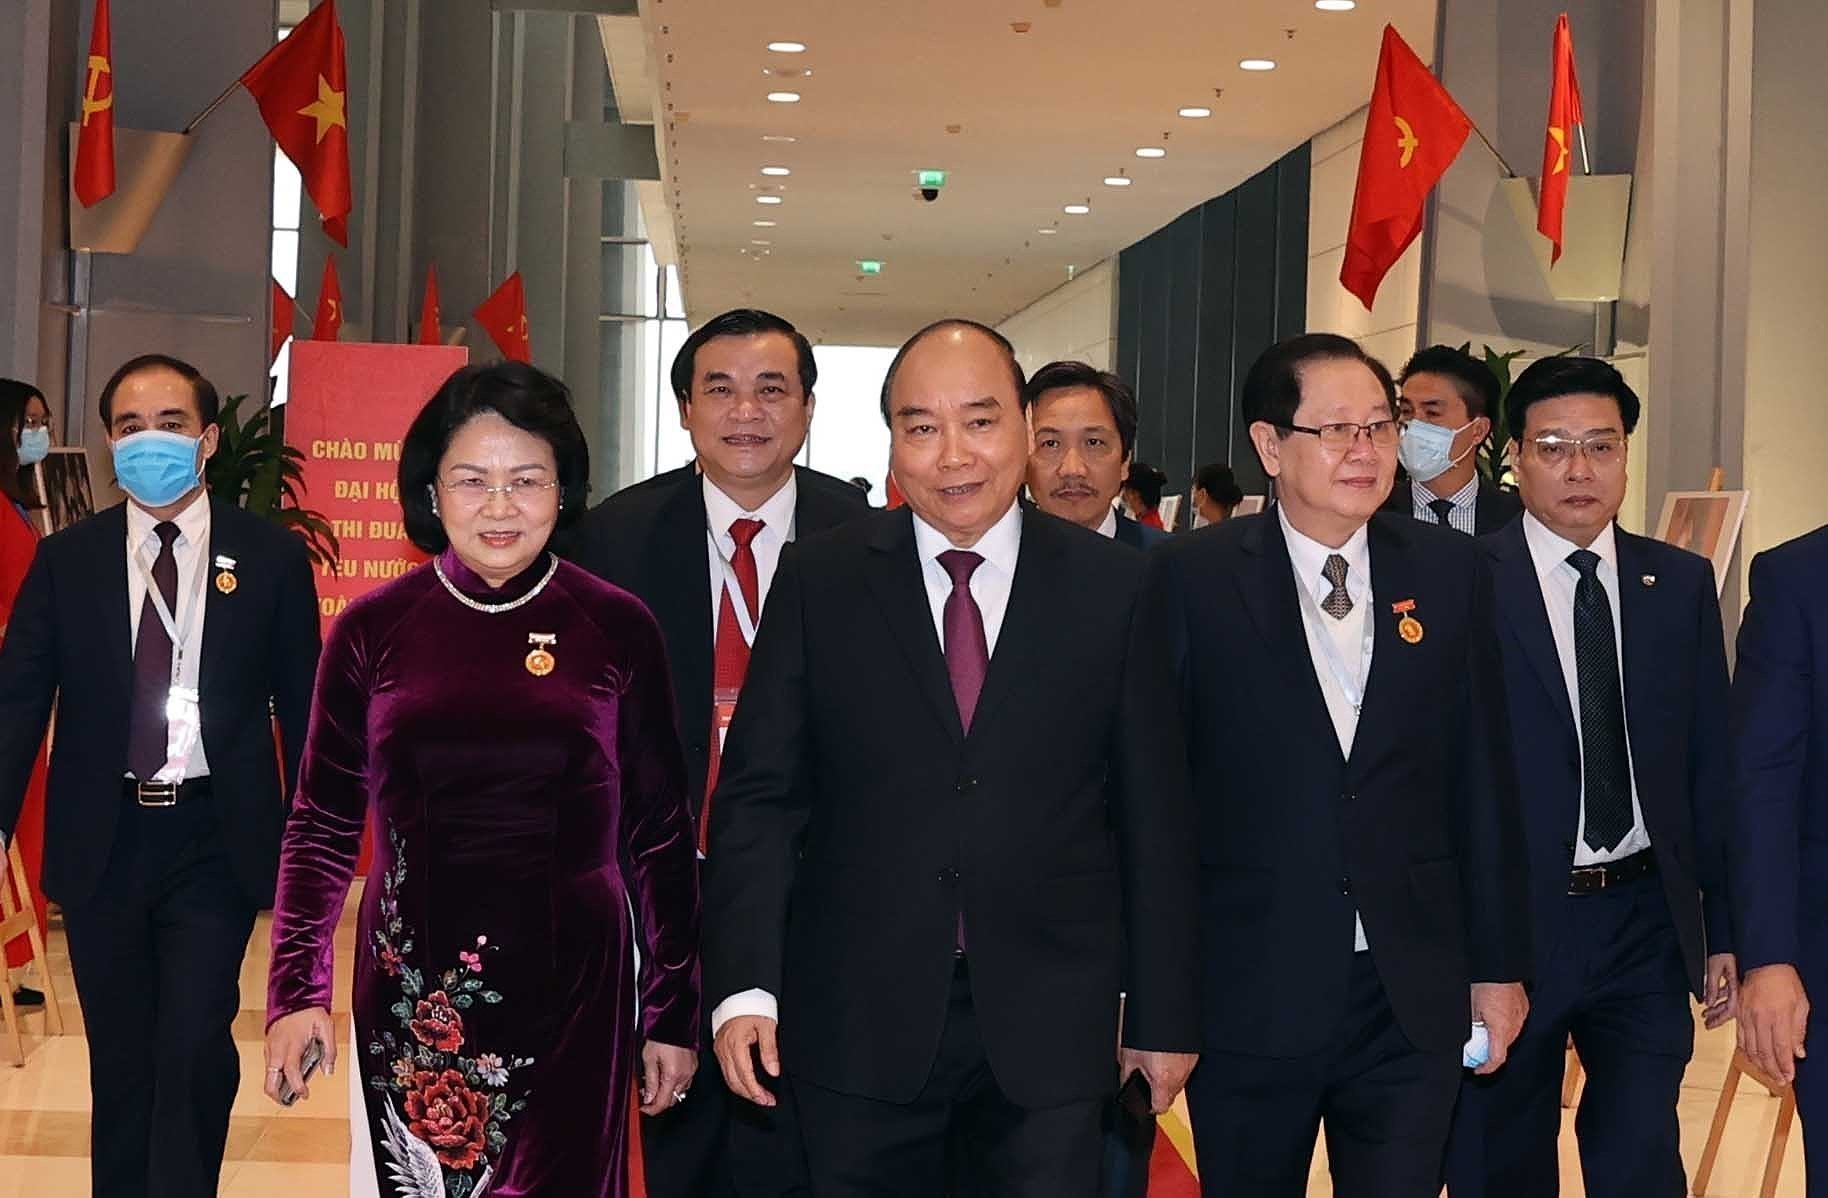 10th National Patriotic Emulation Congress opens in Hanoi hinh anh 2